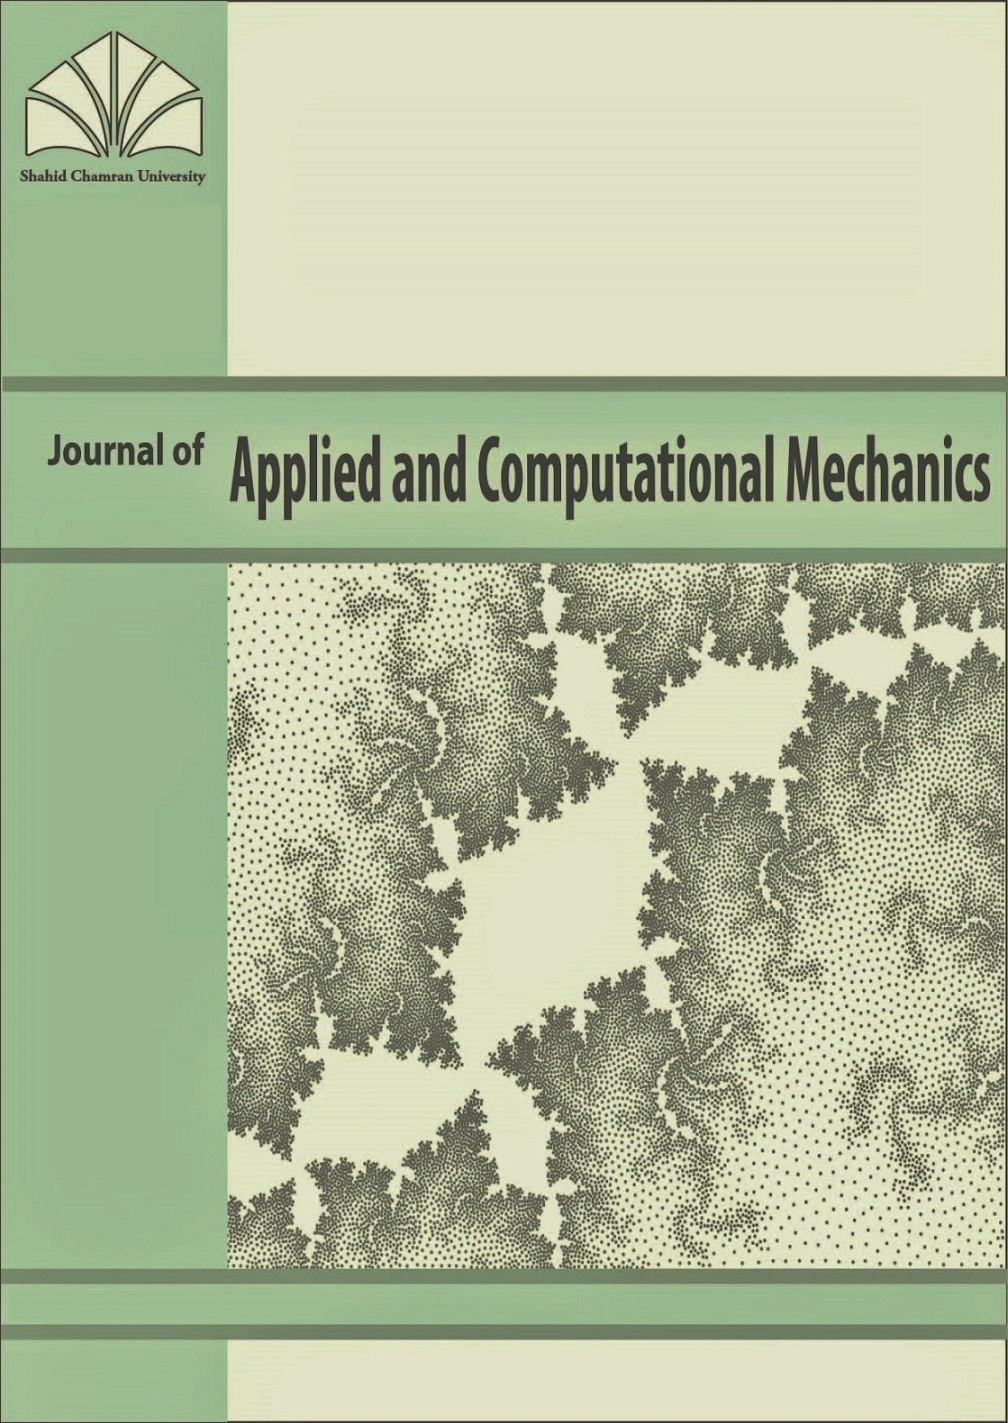 Journal of Applied and Computational Mechanics